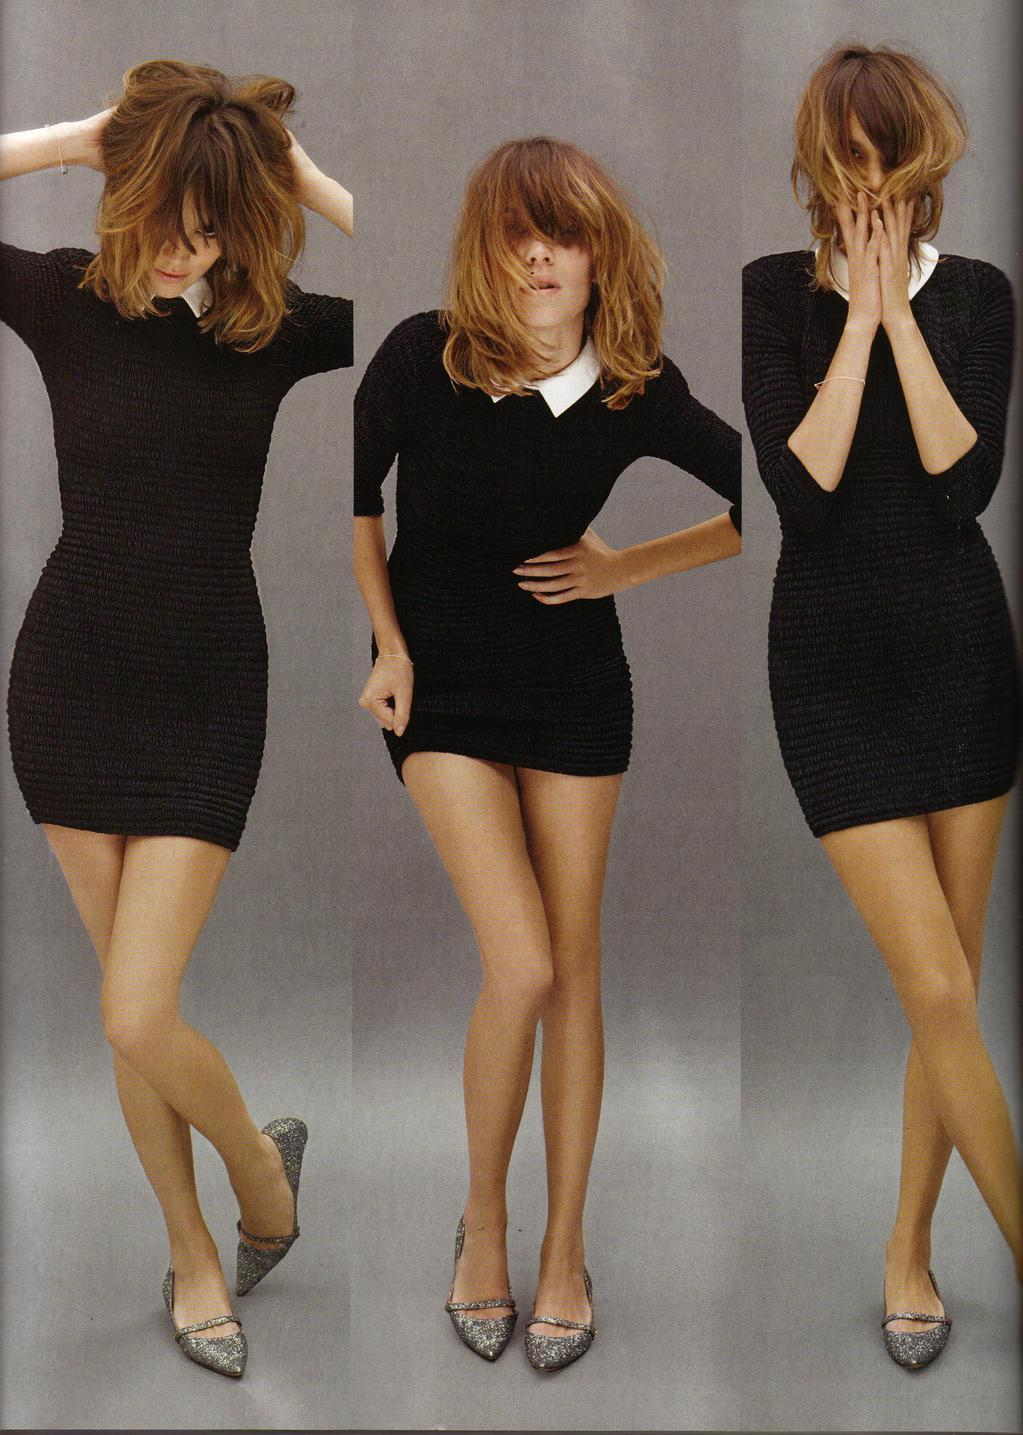 http://images4.fanpop.com/image/photos/16800000/Elle-Magazine-UK-November-2010-alexa-chung-16803852-1023-1435.jpg